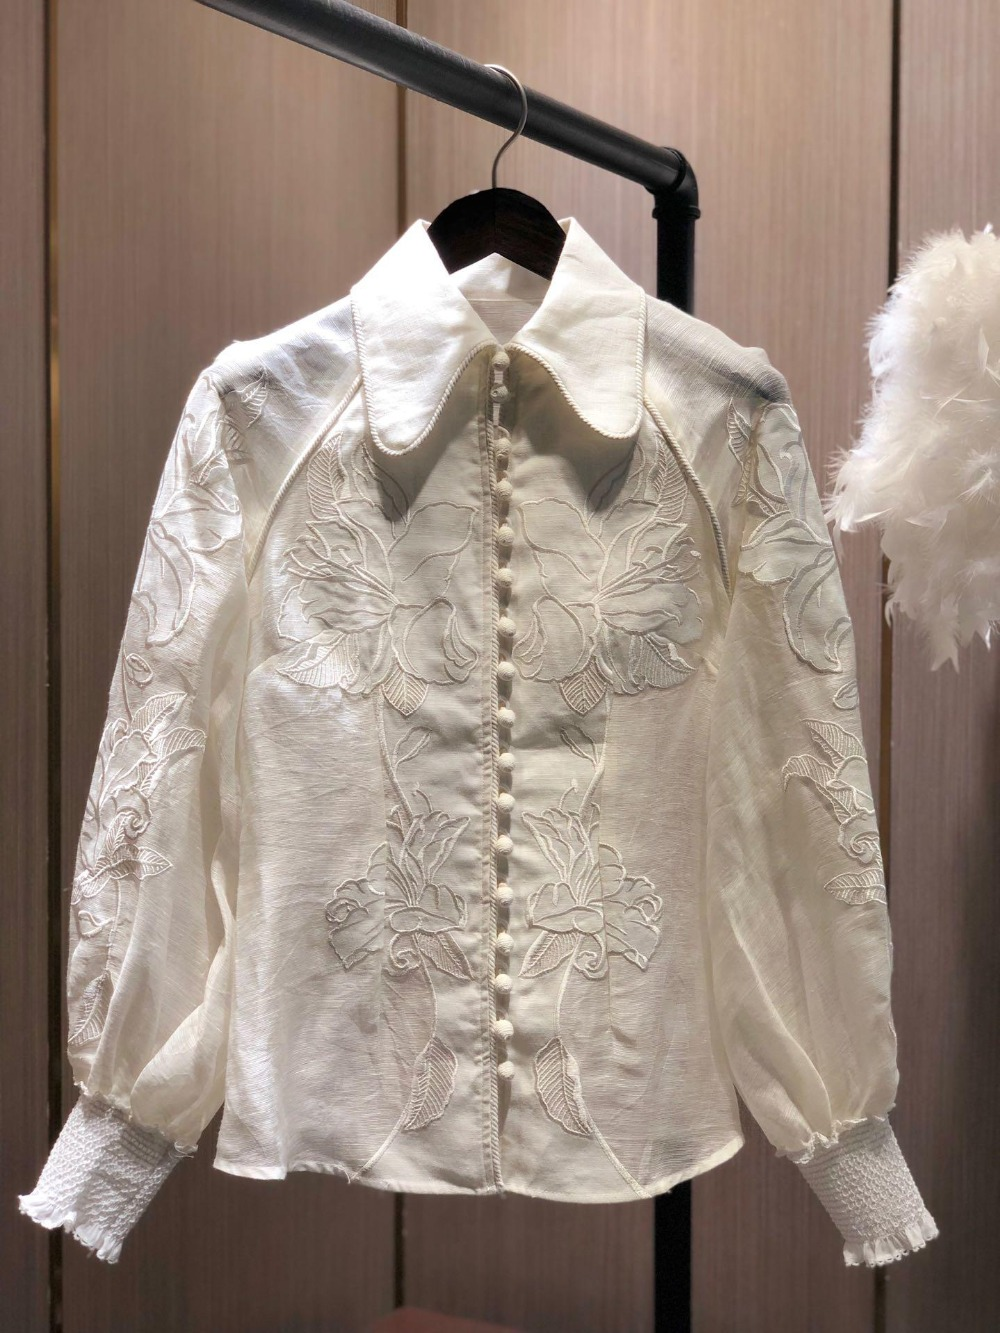 TOP QUALITY WHITE LINEN SHIRT FLOWERS EMBROIDERED LONG SLEEVED TOP NEW 2019 CORSAGE APPLIQUE BLOUSE